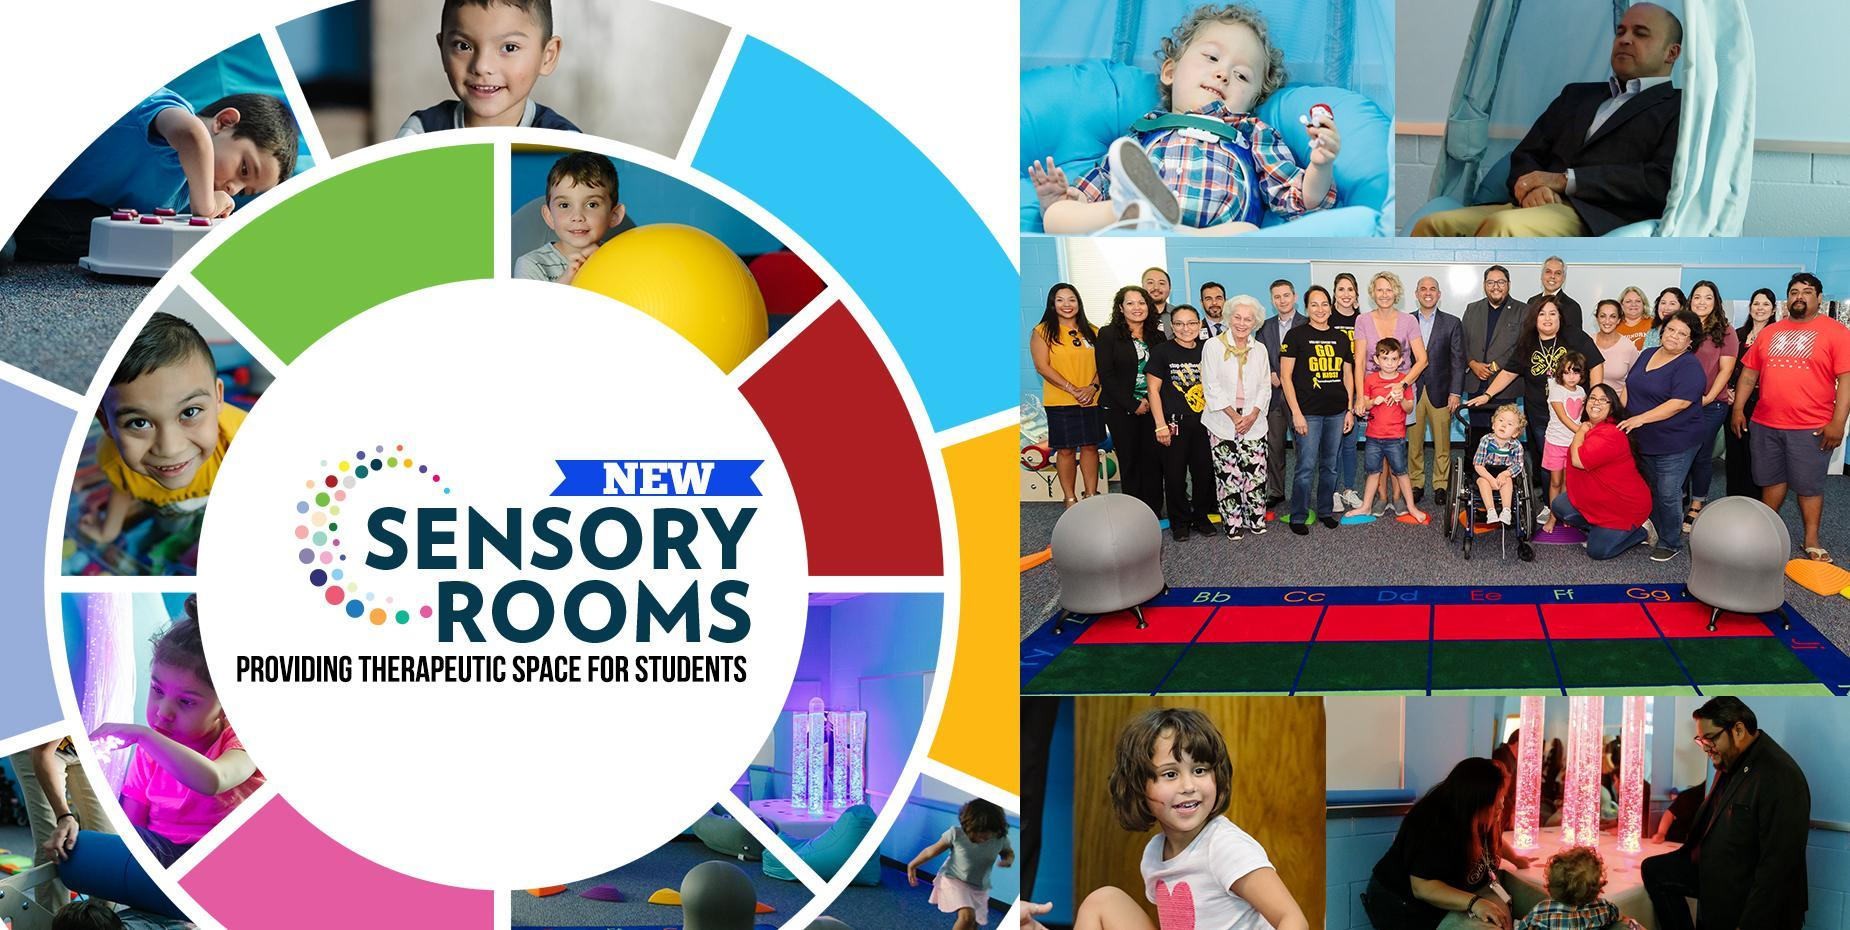 New Sensory Rooms providing therapeutic space for students